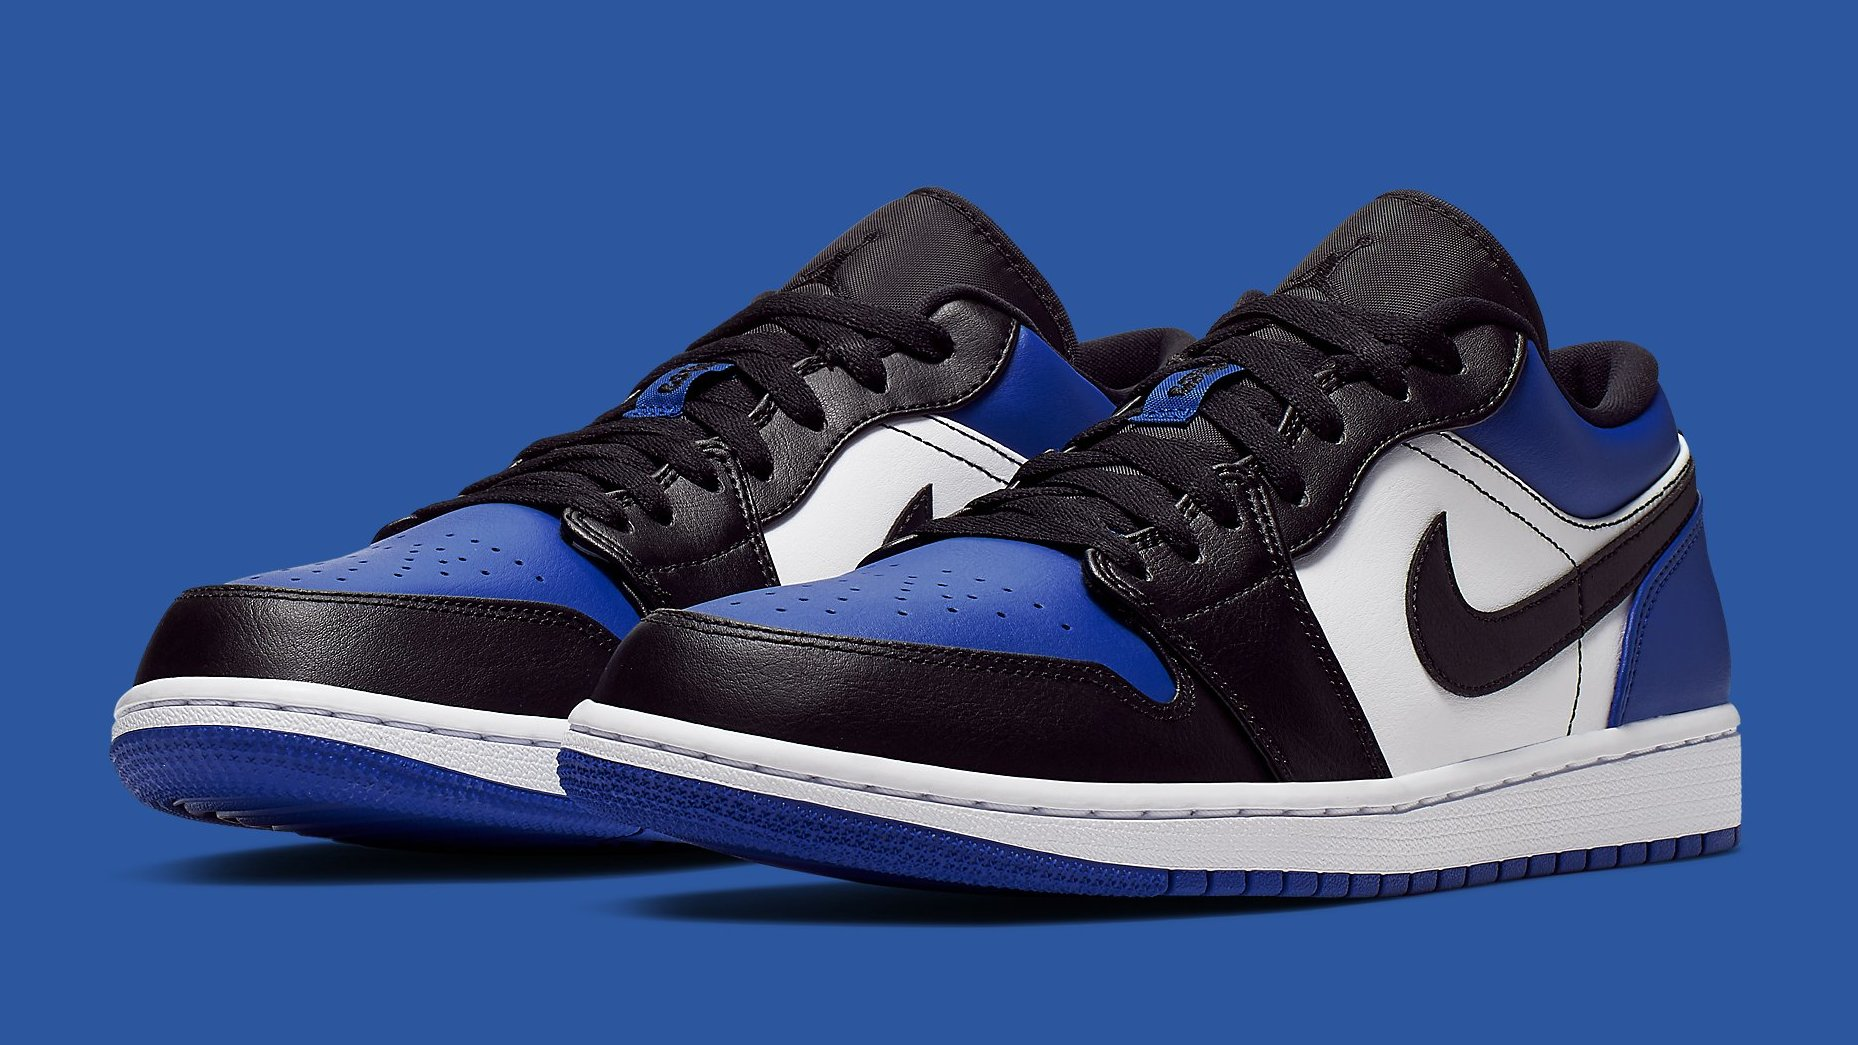 Air Jordan 1 Low Royal Toe Release Date CQ9446-400 | Sole ...